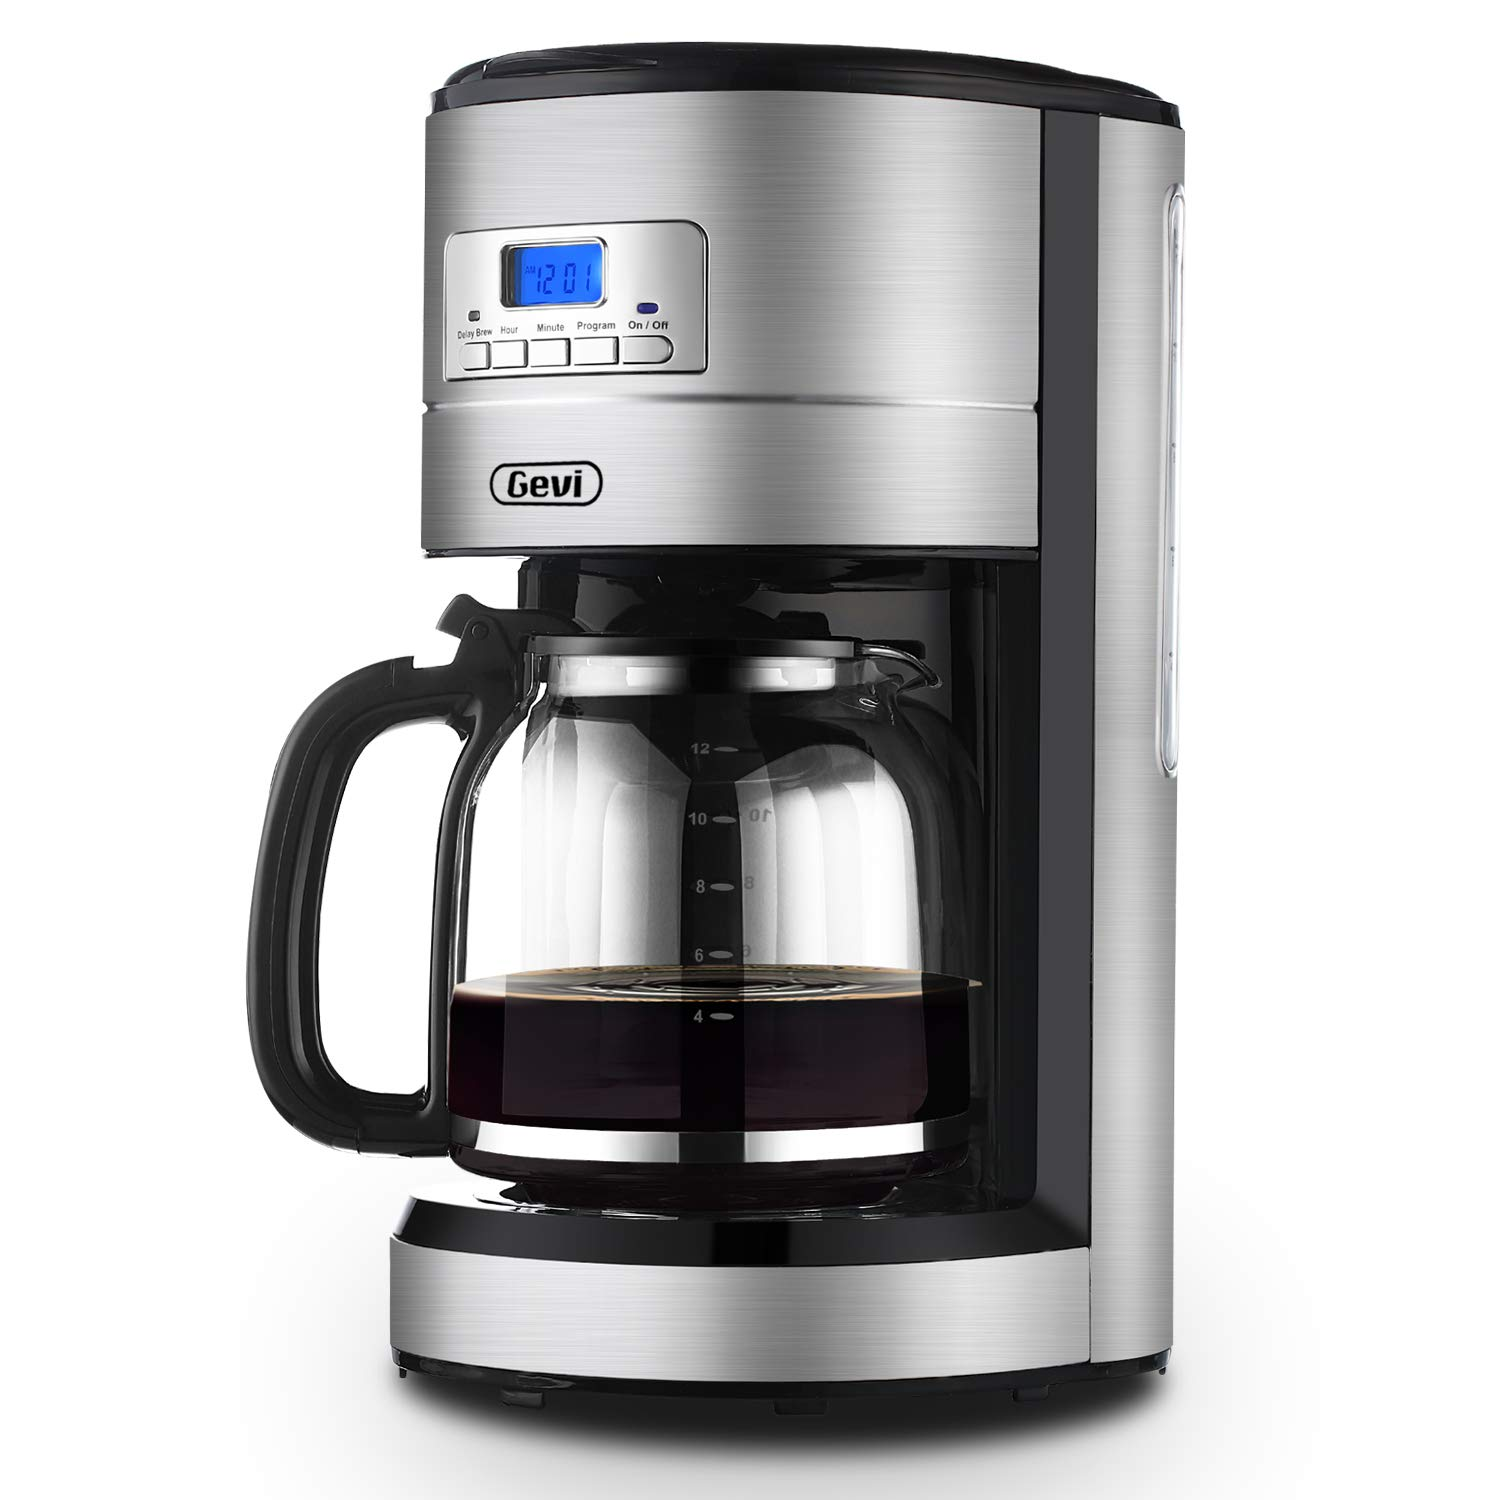 Coffee Maker GEVI 12 Cup Coffee Machine Stainless Programmable Setting Silent Operation Drip Coffeemaker with Coffee Pot and Filter for Home and Office (Stainless Steel)